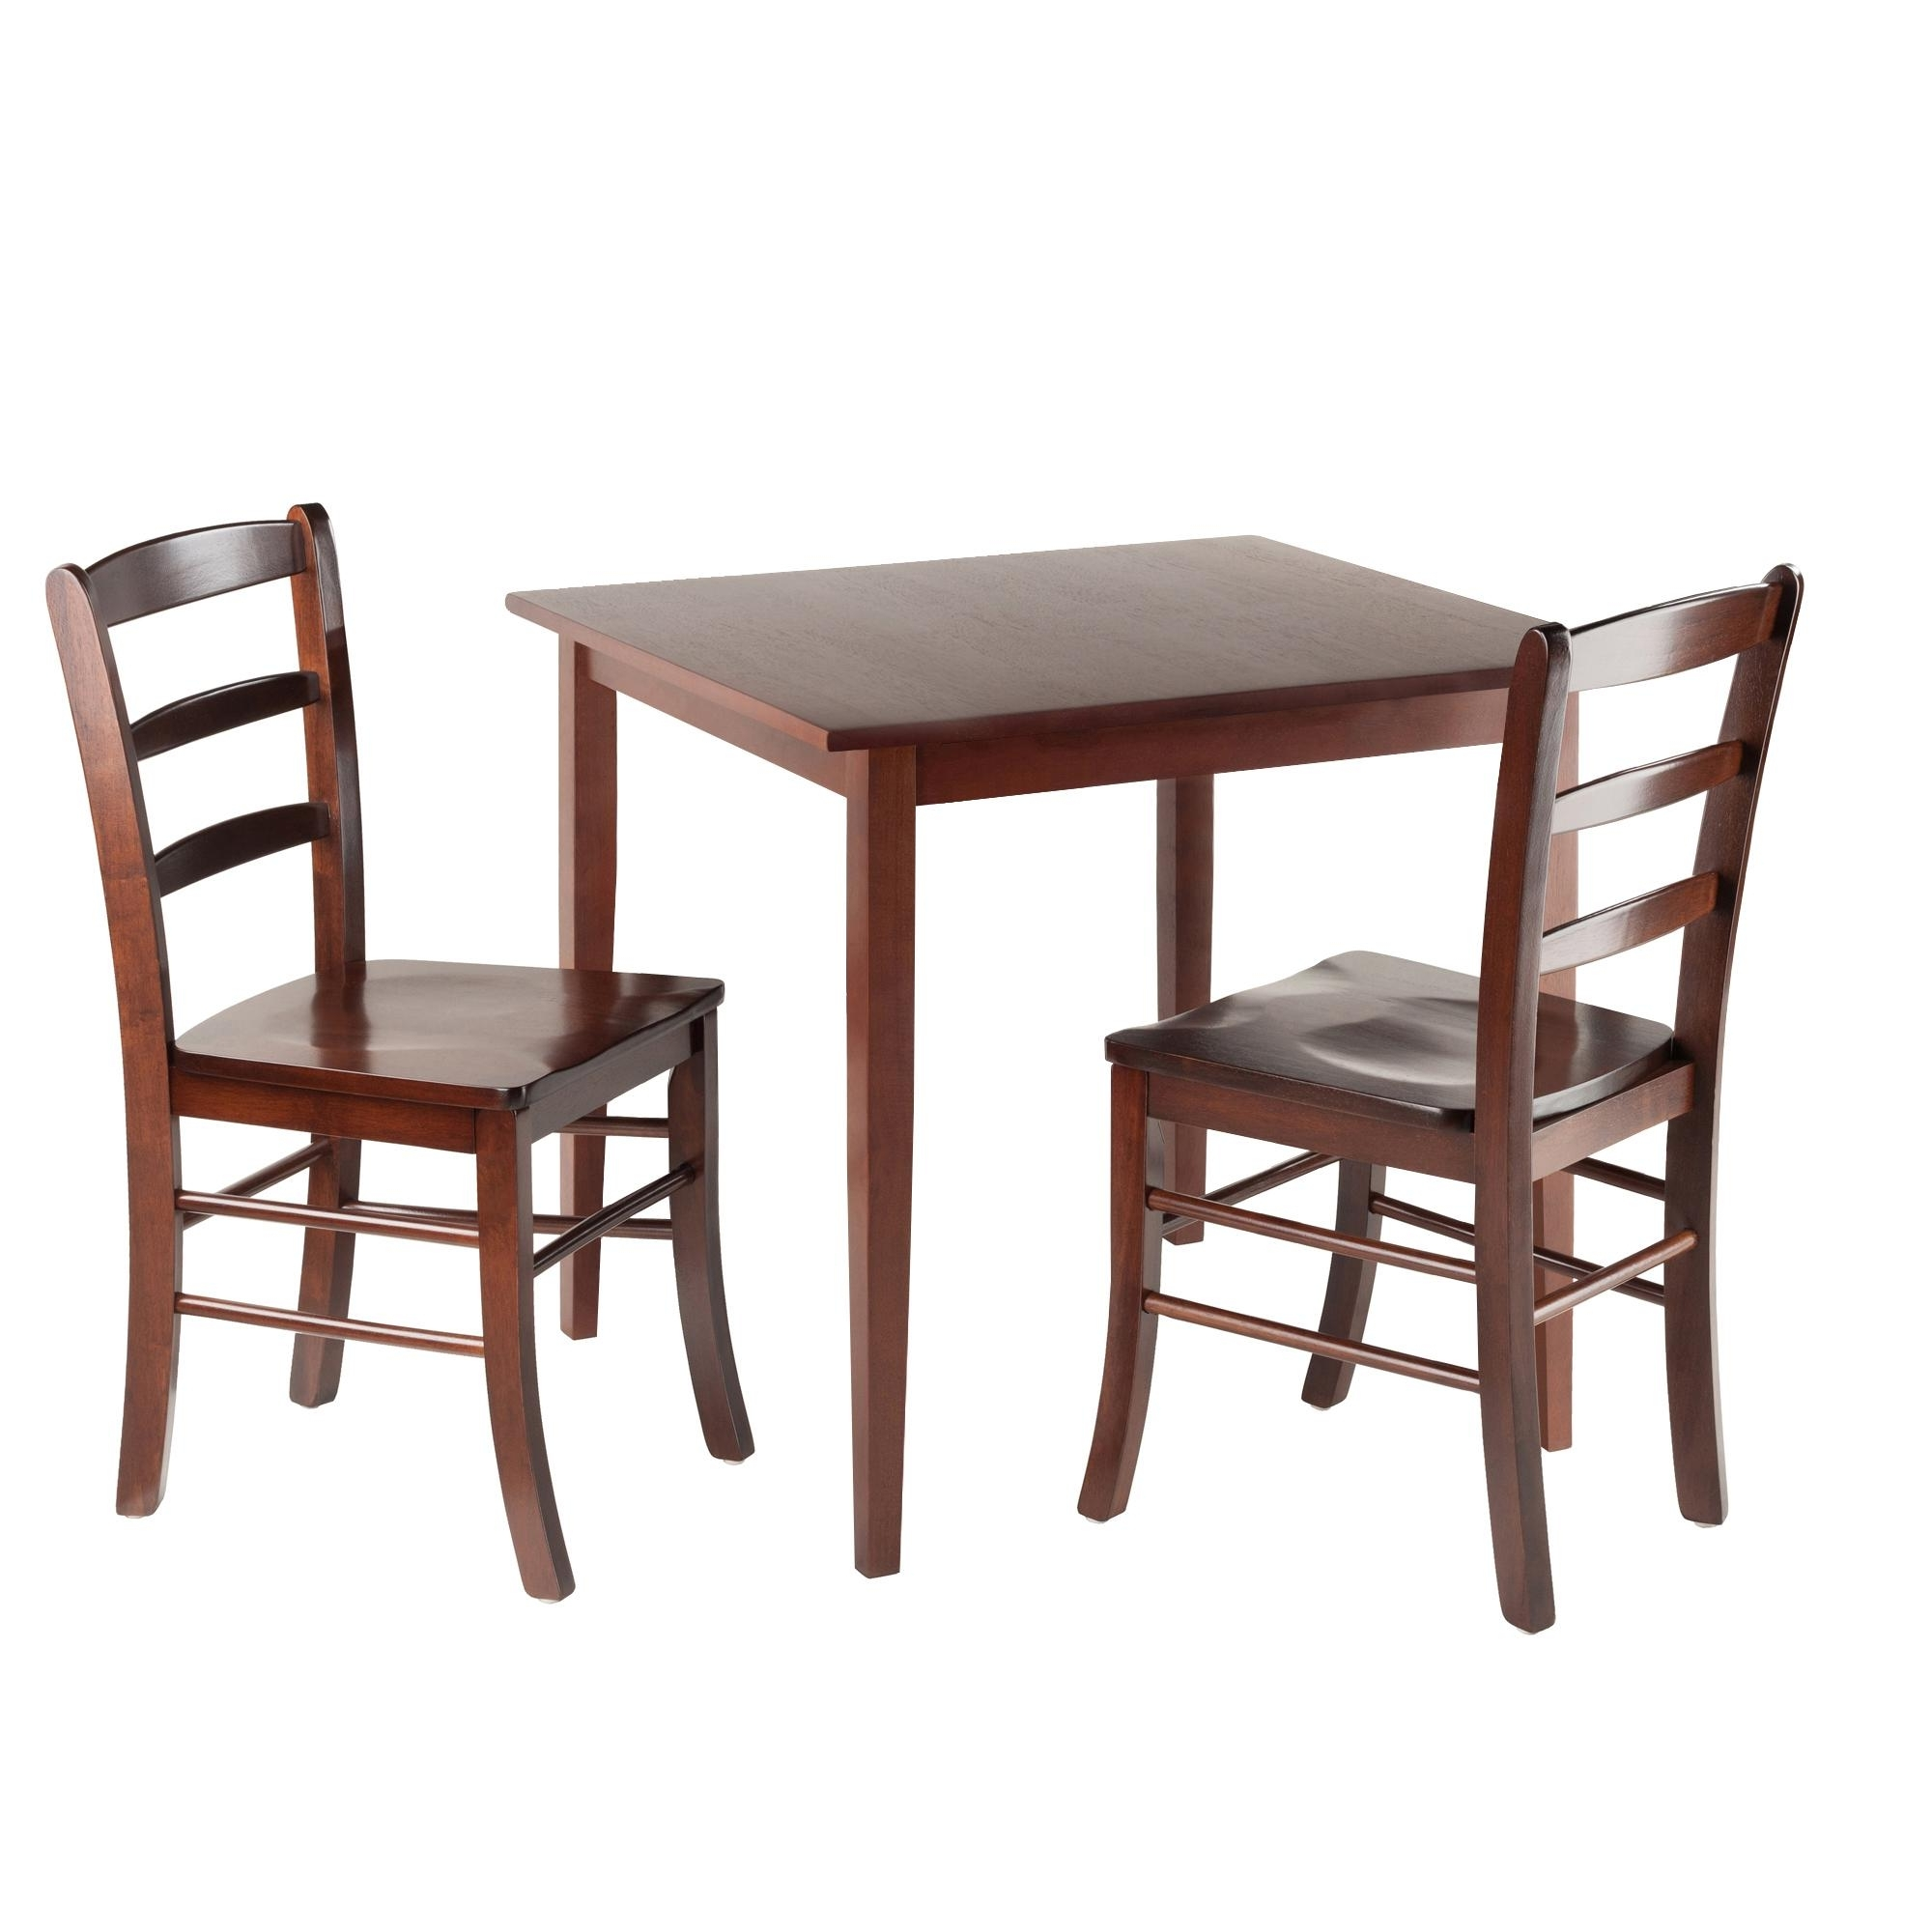 Amazon – Winsome Groveland Square Dining Table With 2 Chairs, 3 Within Recent Square Oak Dining Tables (View 6 of 25)